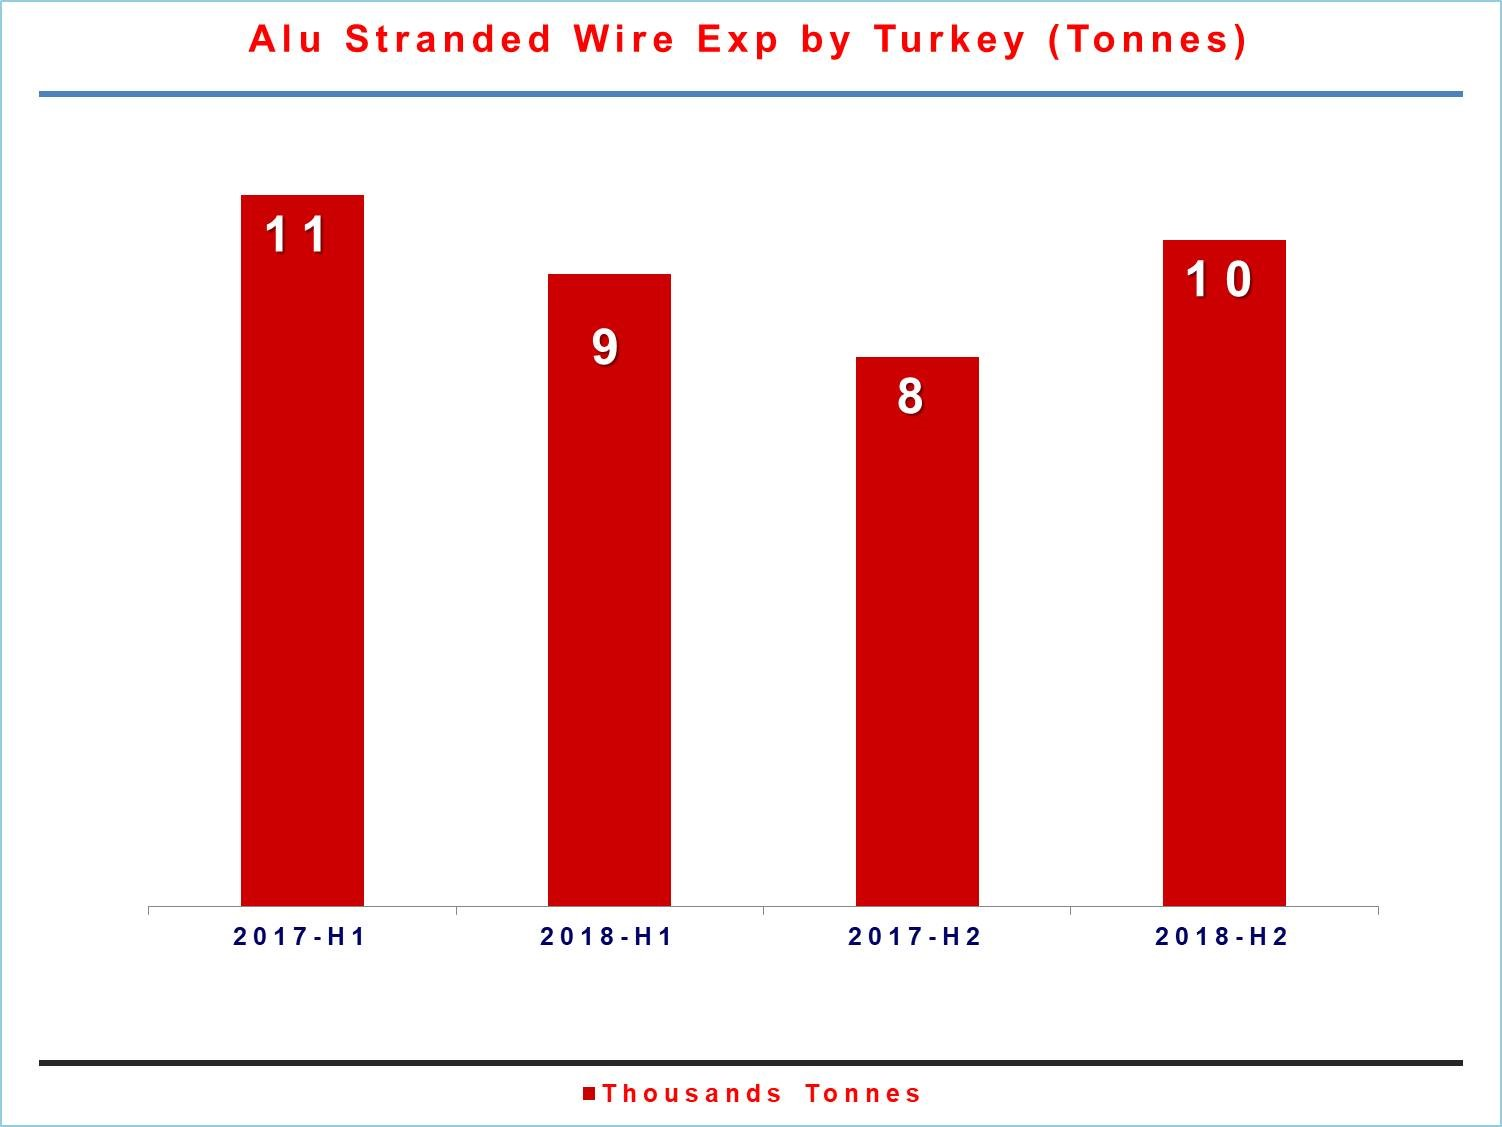 Turkey aluminium stranded wire exports down 11% in H1 2018